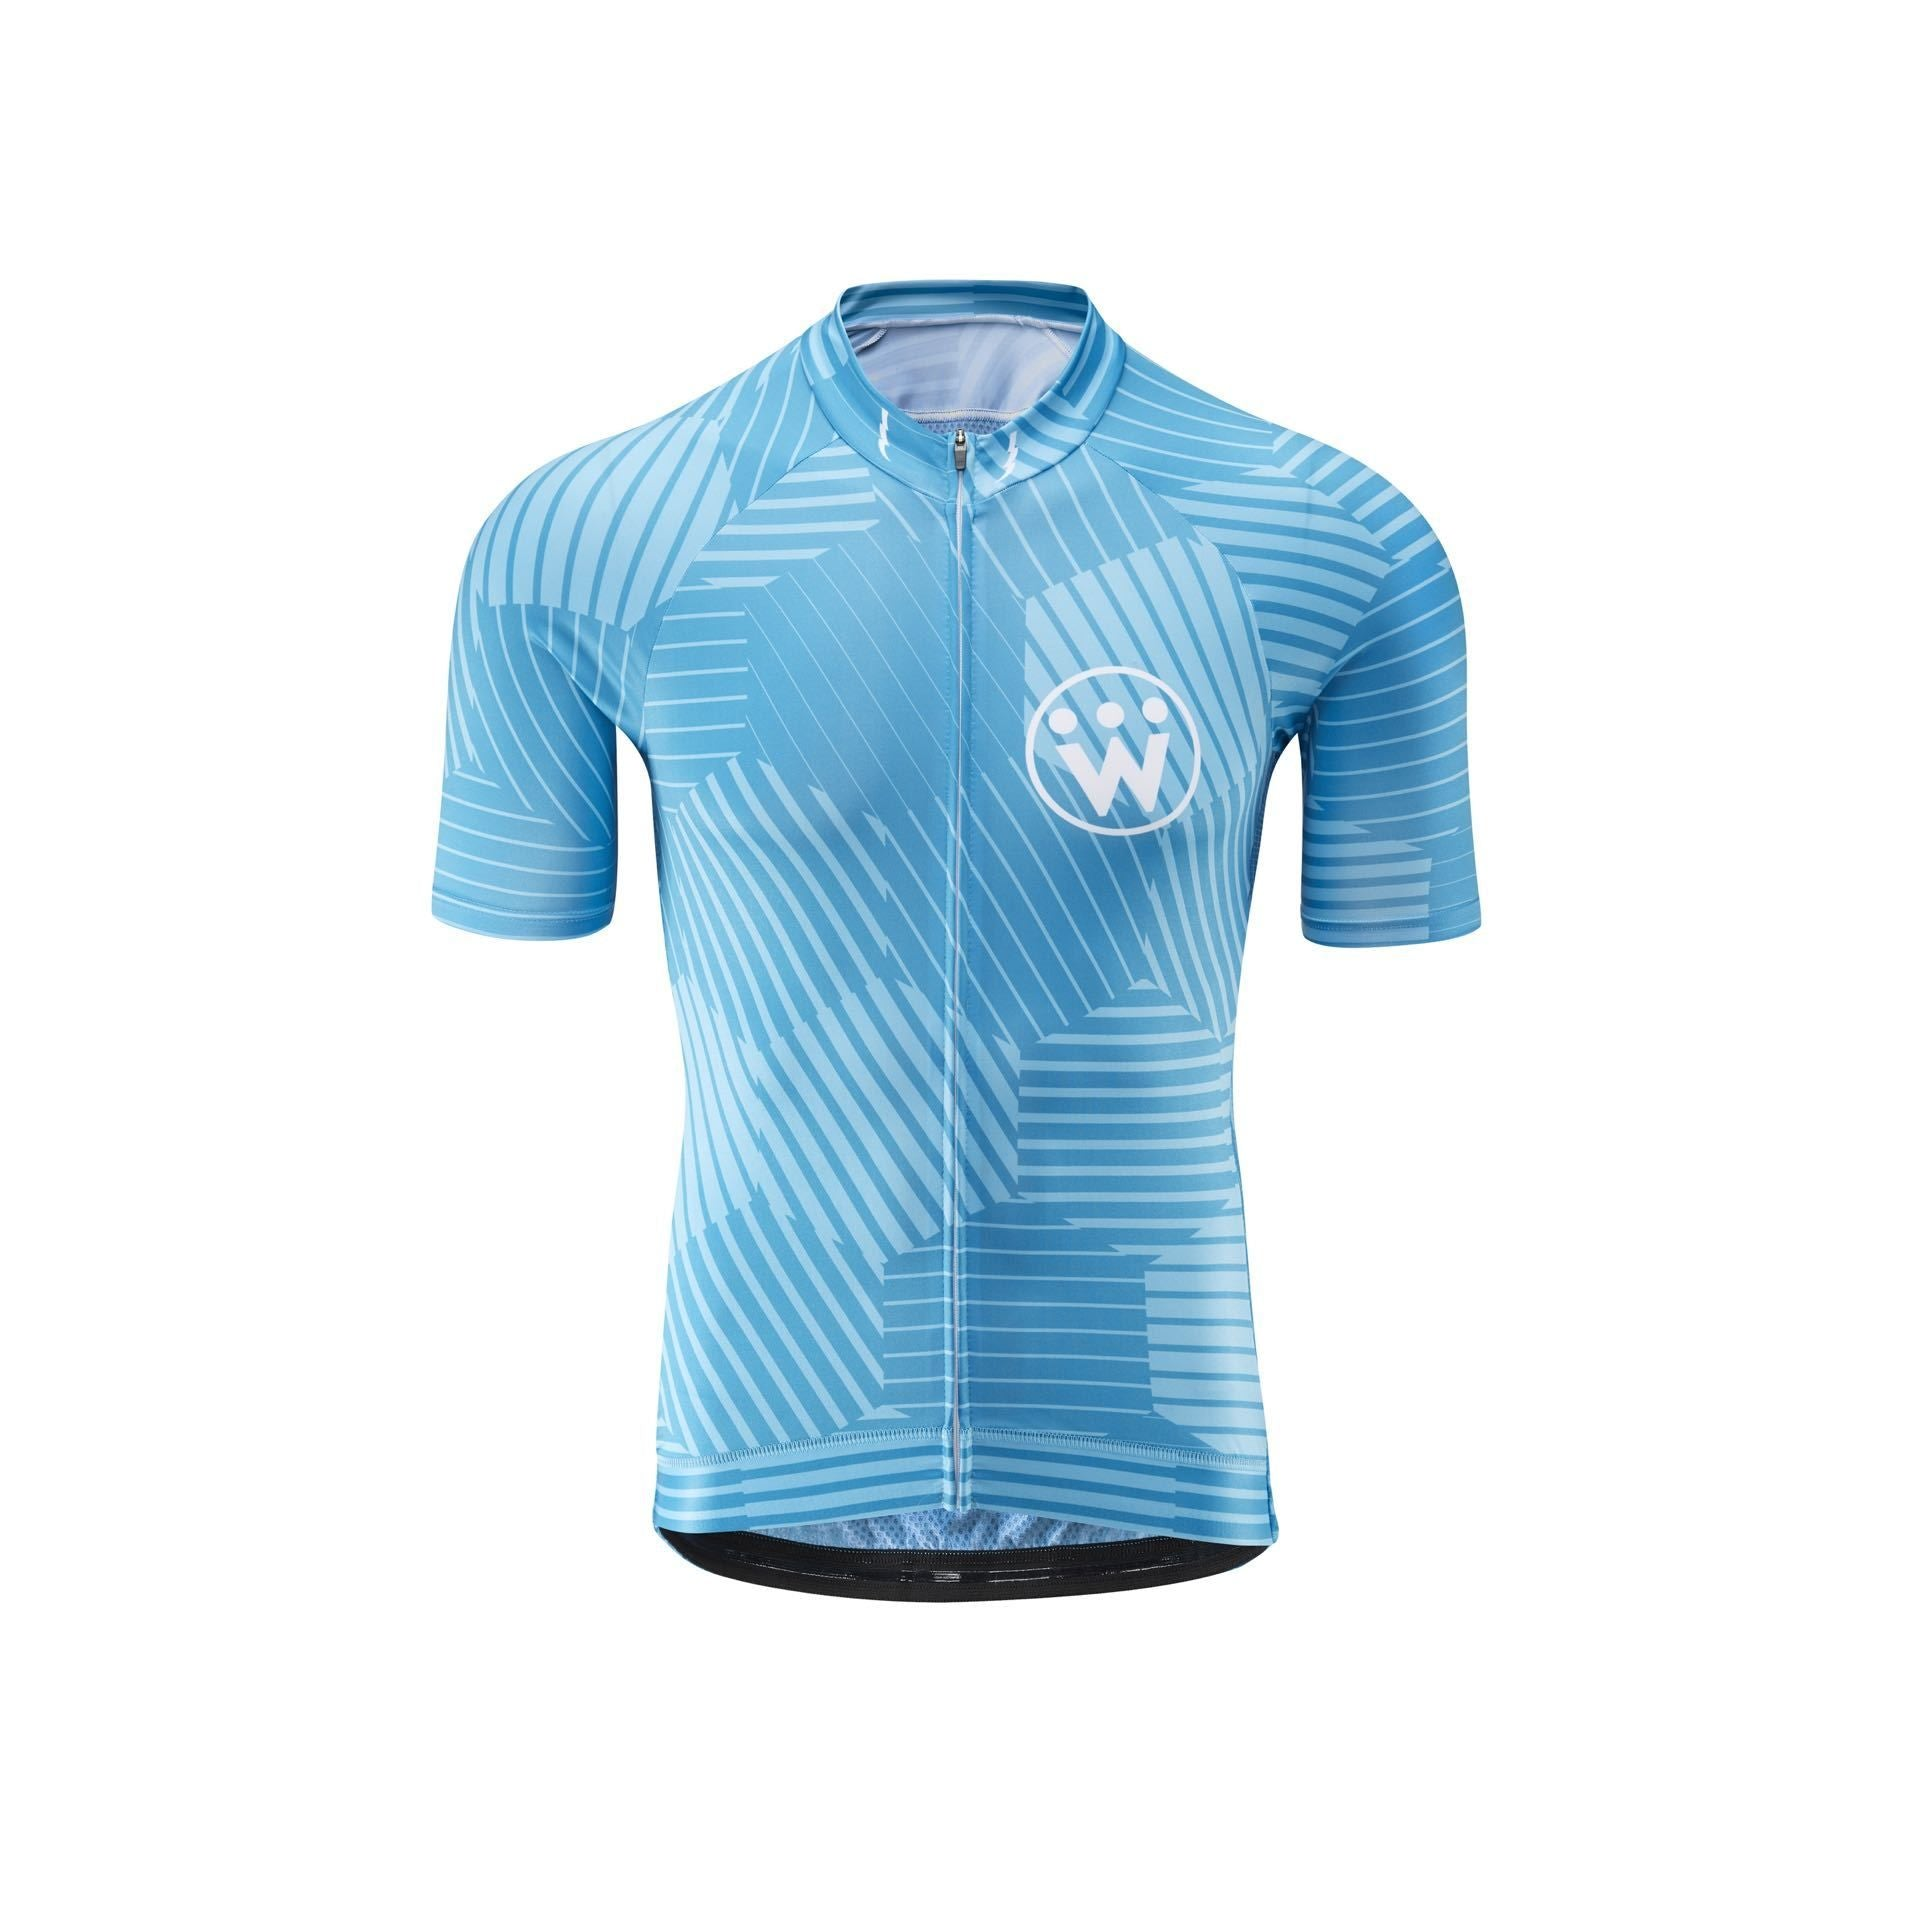 Tequila Blue Jersey